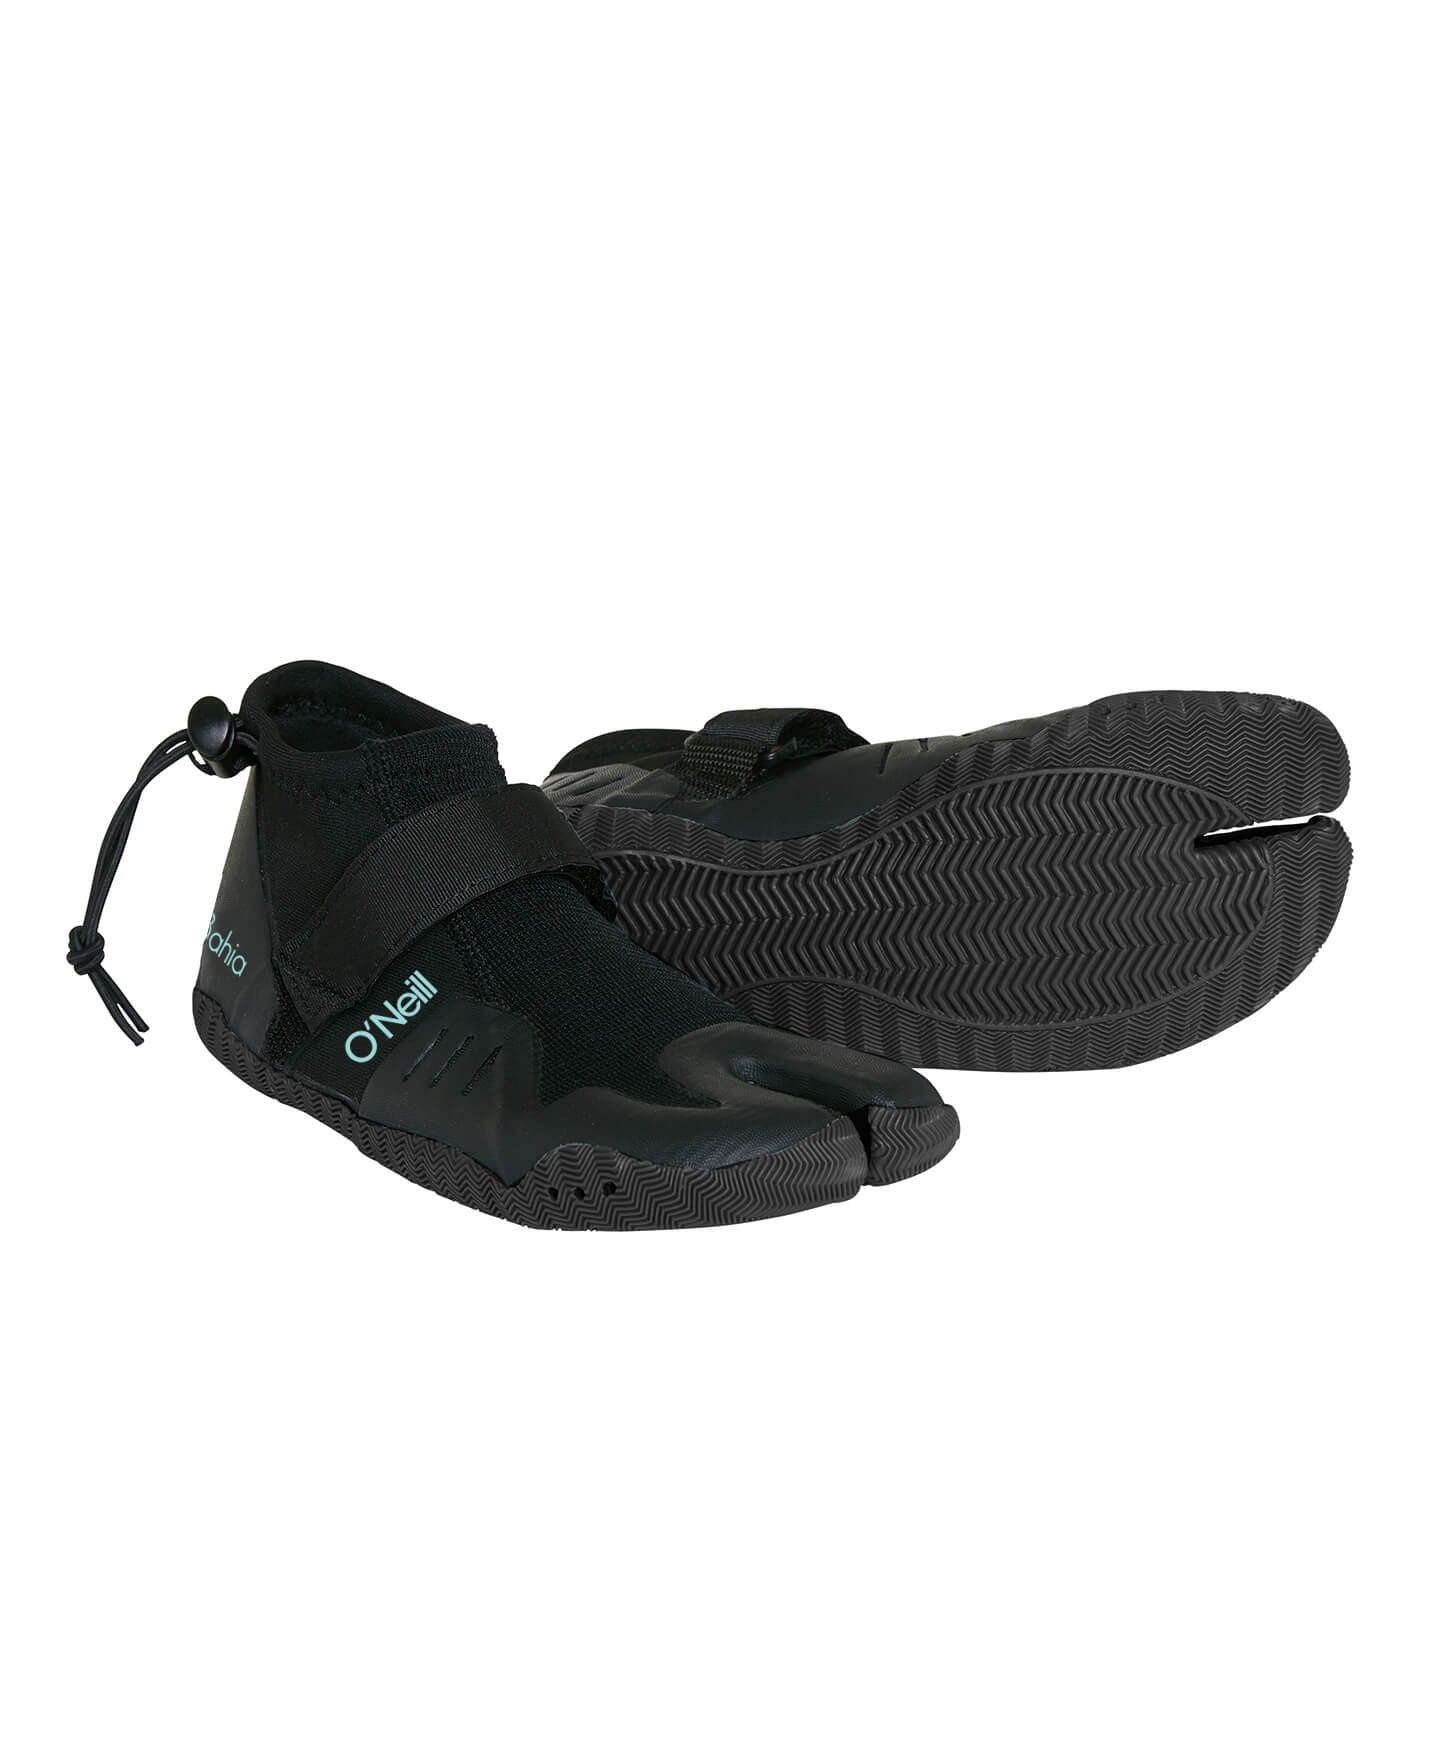 Womens Bahia Reef 2mm Split Toe Wetsuit Boot